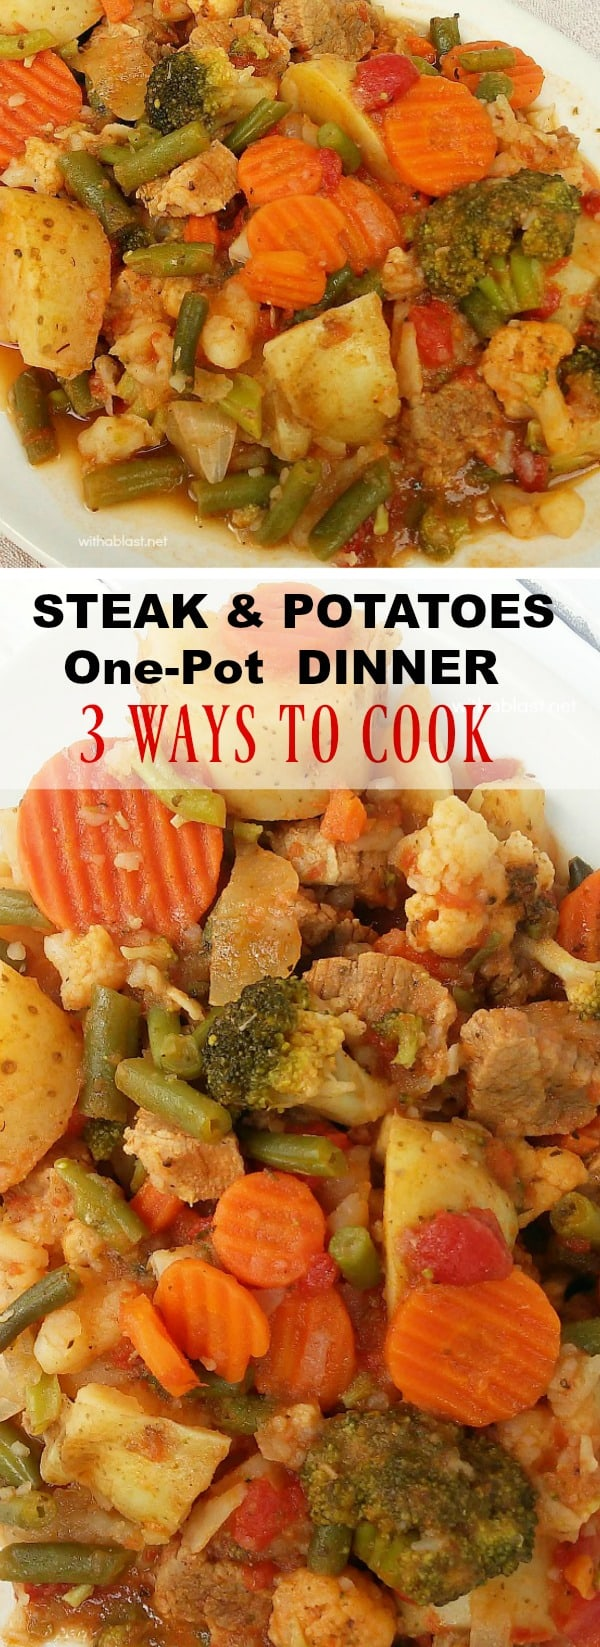 Steak and Potatoes Dinner is an easy one-pot meal, which can be made using any of three methods - Loaded with meat and vegetables this is perfect comfort food #OnePotDinner #OnePotMeals #SteakAndPotatoes #ComfortFood